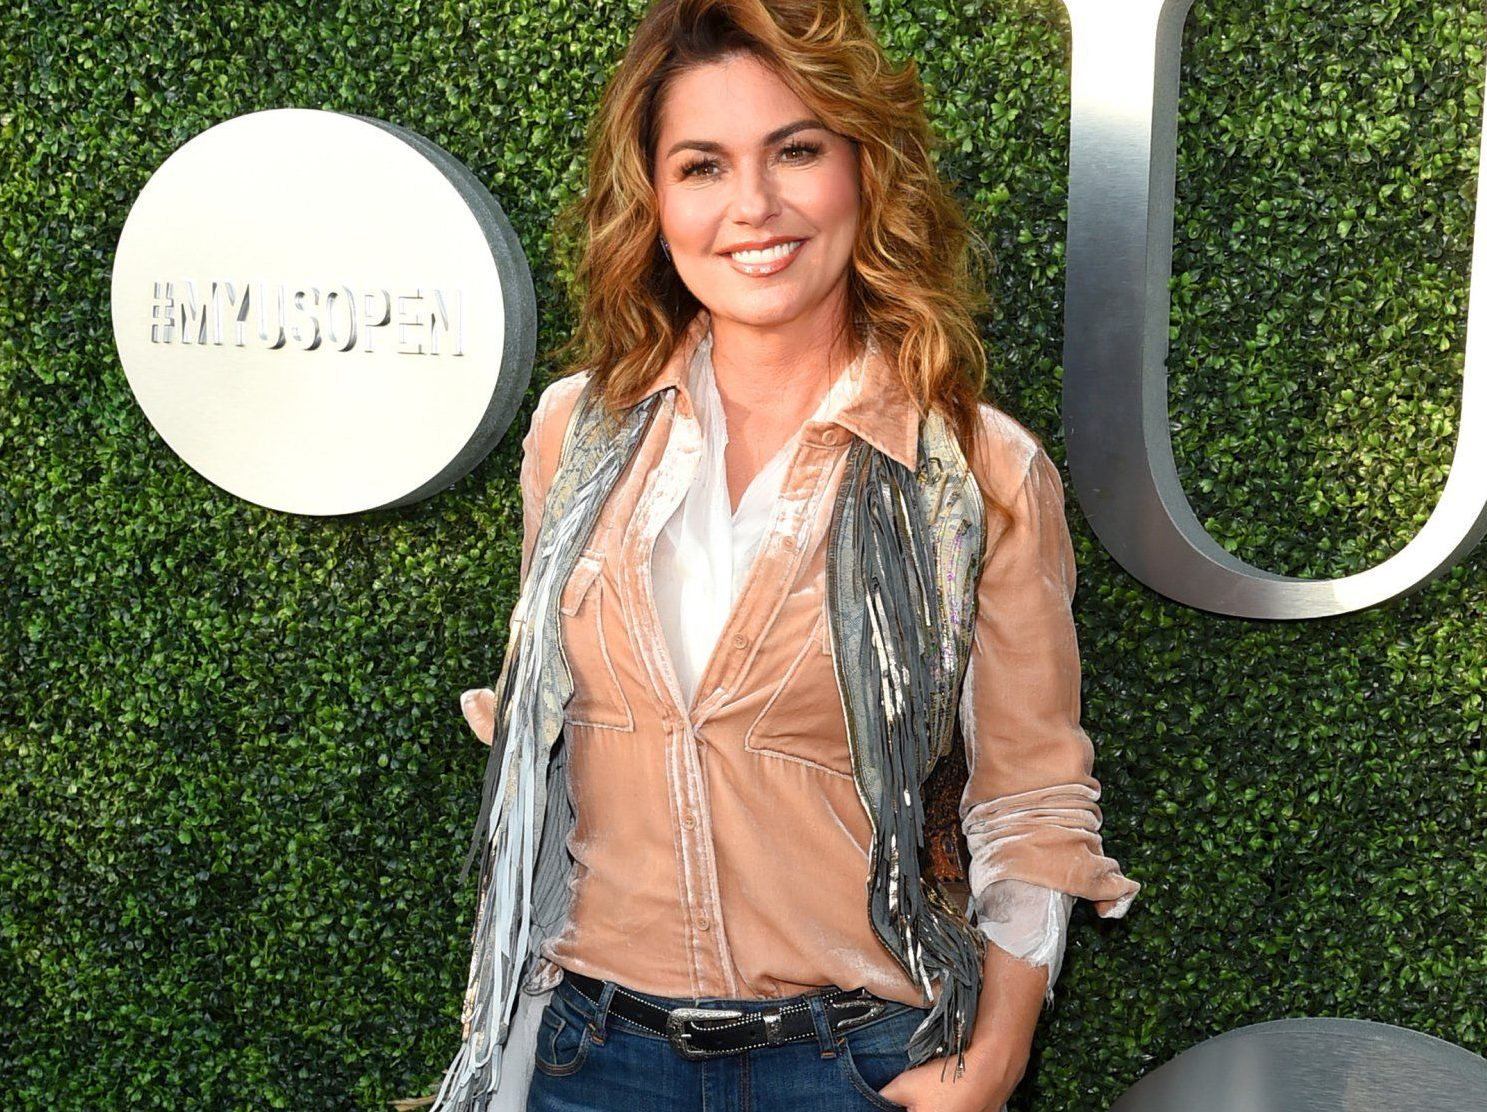 NEW YORK, NY - AUGUST 28: Shania Twain attends the 17th Annual USTA Foundation Opening Night Gala at USTA Billie Jean King National Tennis Center on August 28, 2017 in the Queens borough of New York City. (Photo by Jamie McCarthy/Getty Images)